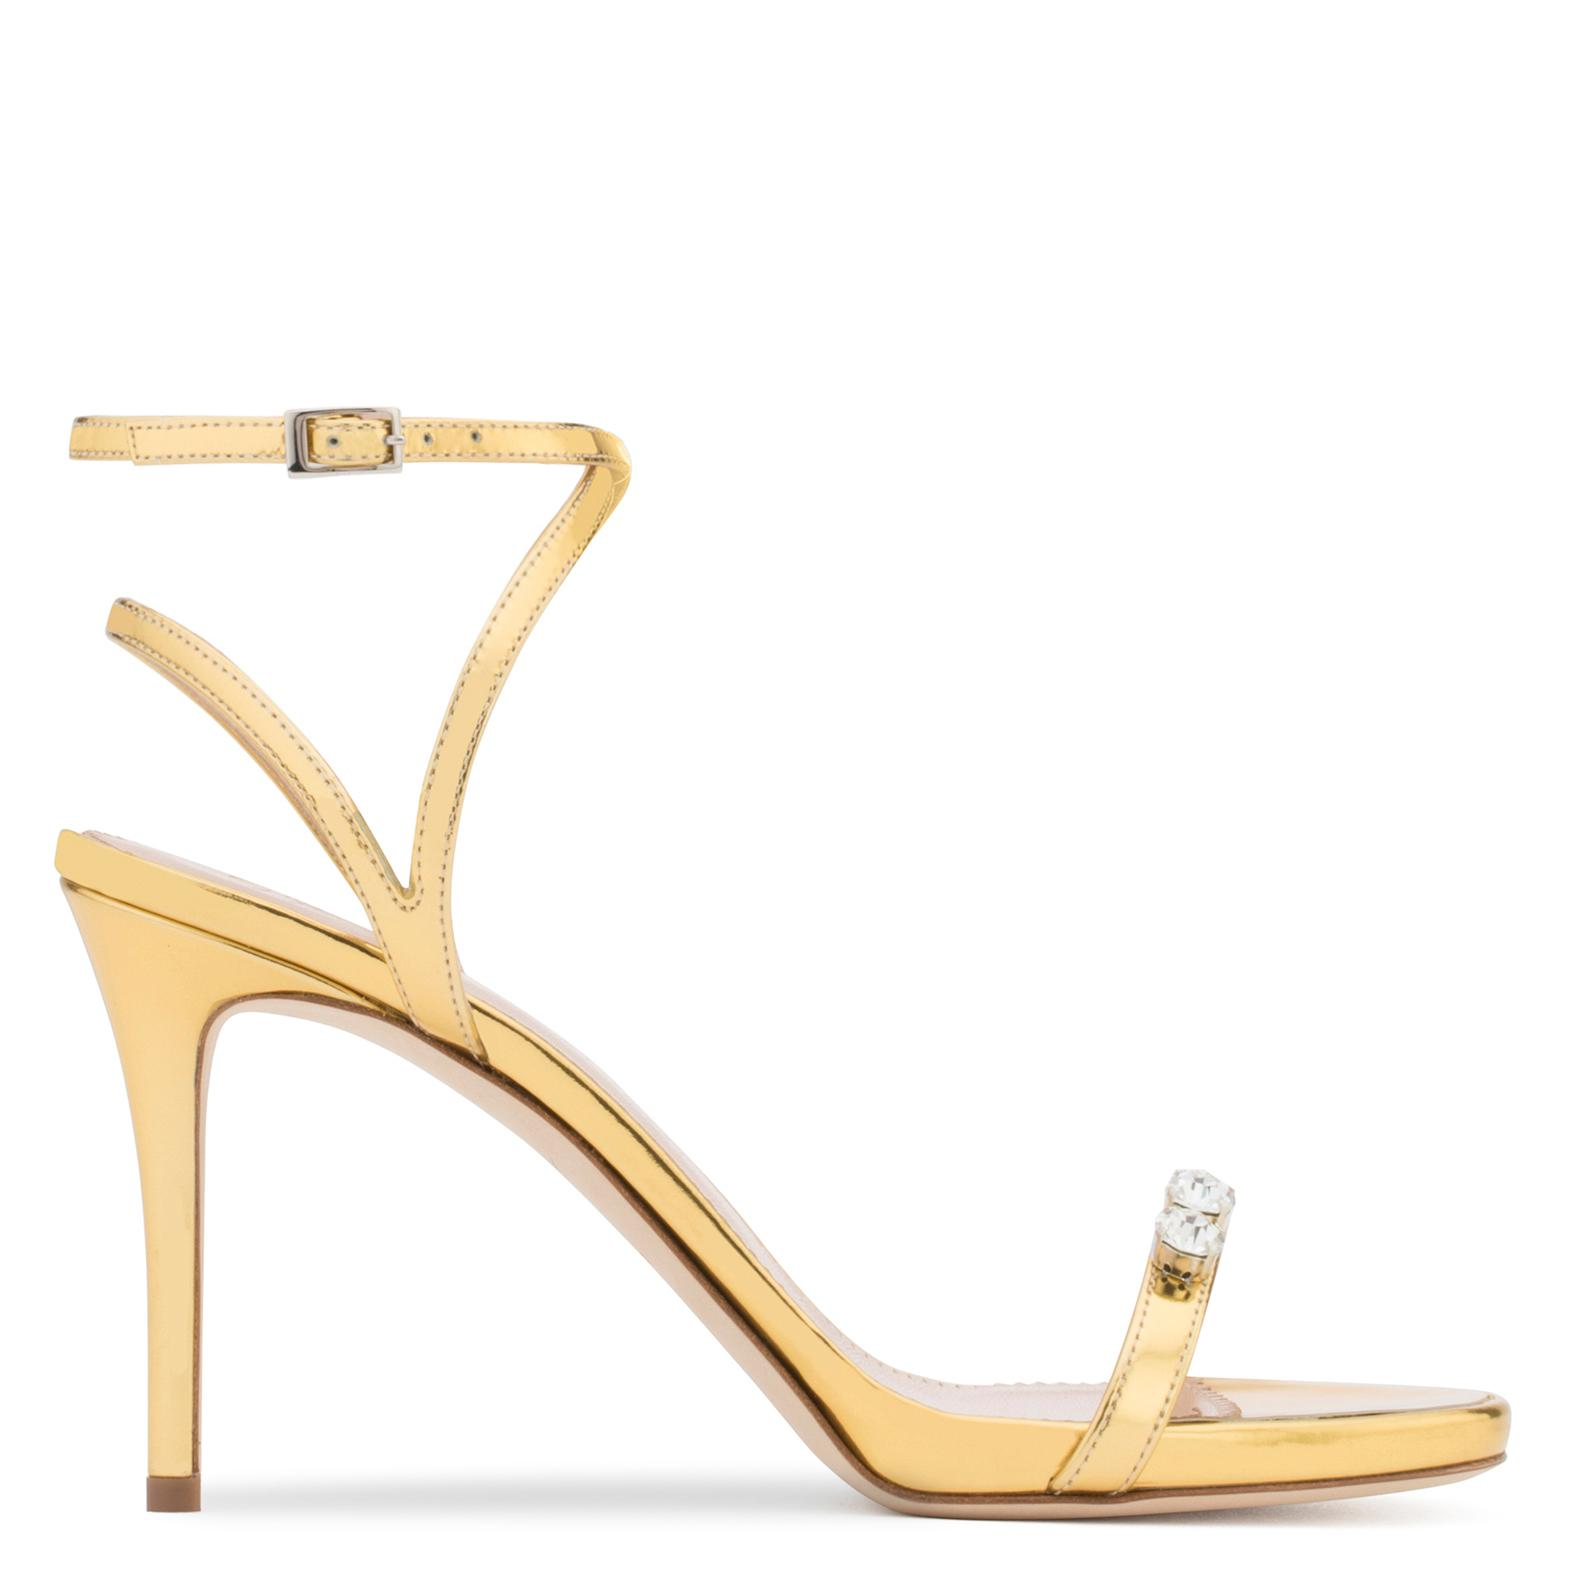 Giuseppe Zanotti Mirrored patent leather sandal ELLIE Hty6yx